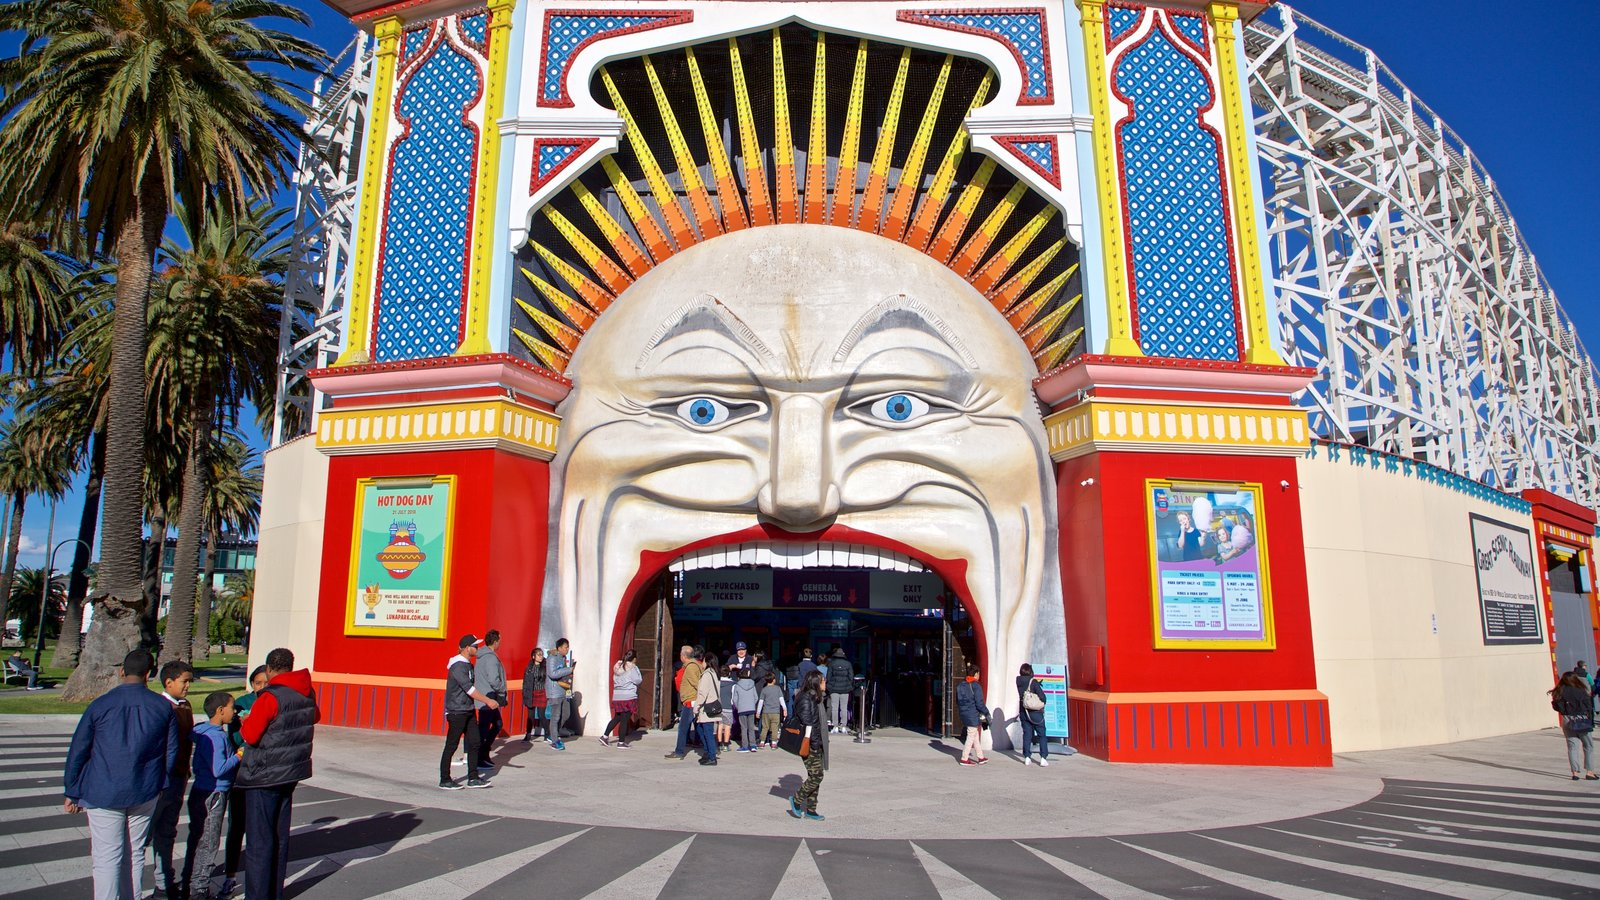 Luna Park showing signage, outdoor art and rides